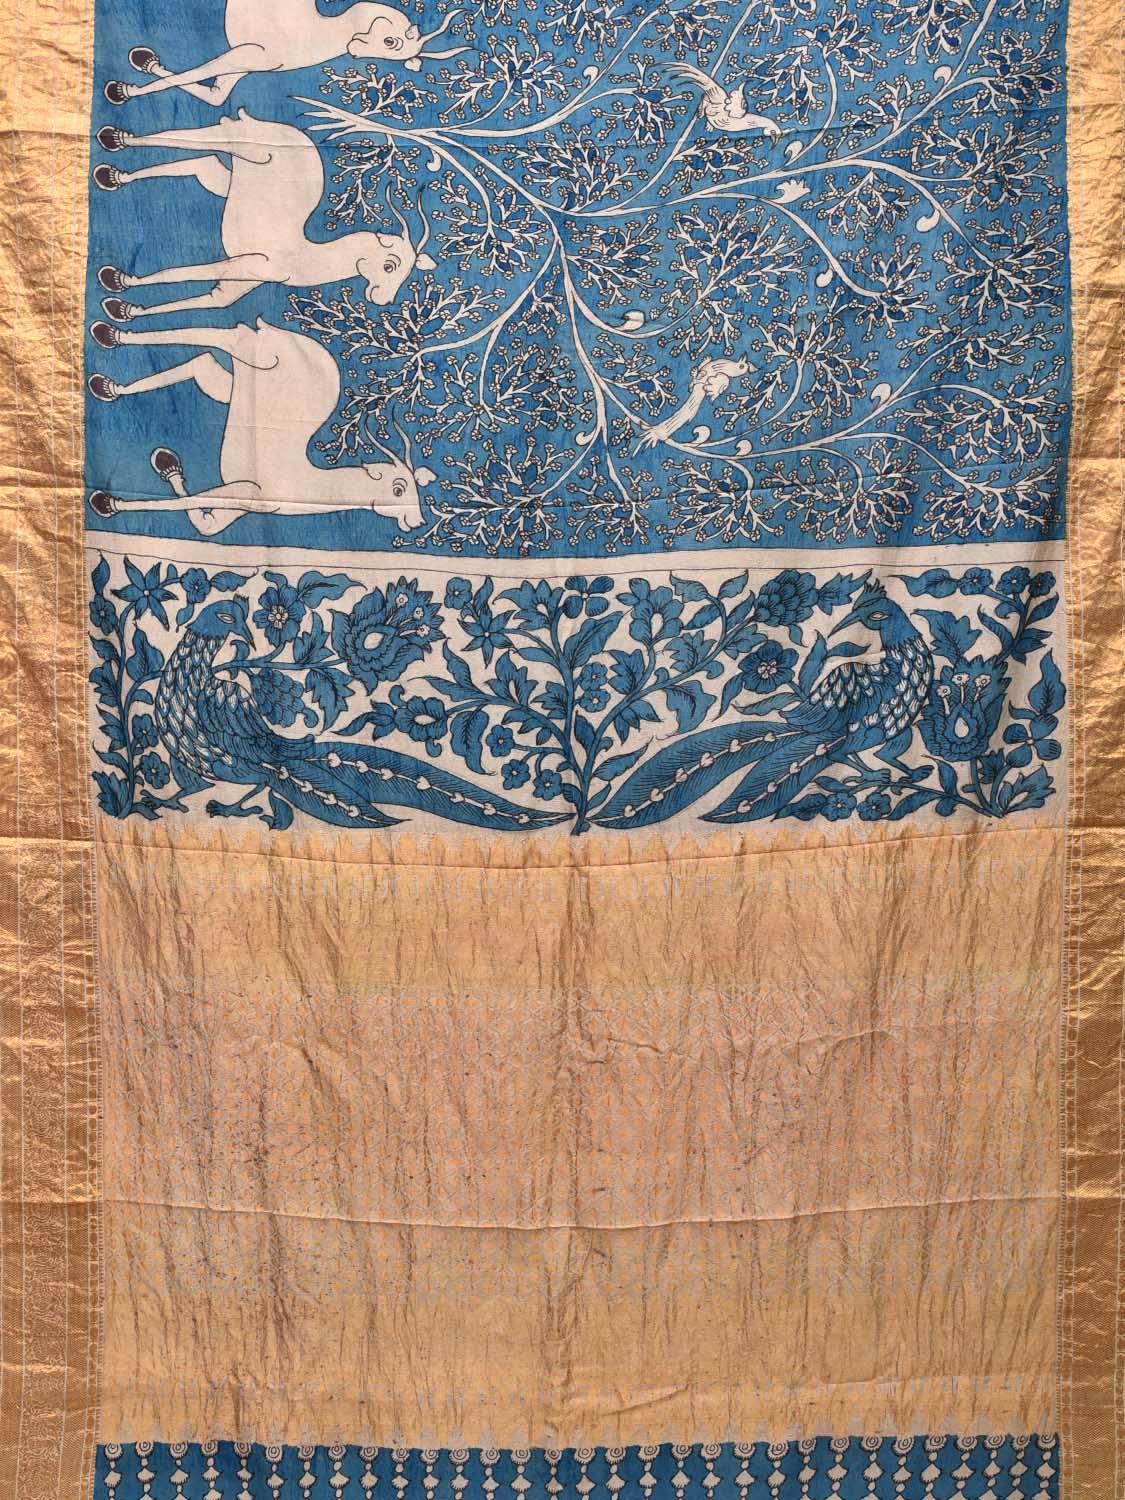 Blue Kalamkari Hand Painted Kanchipuram Silk Handloom Saree with Deers Design KL0256